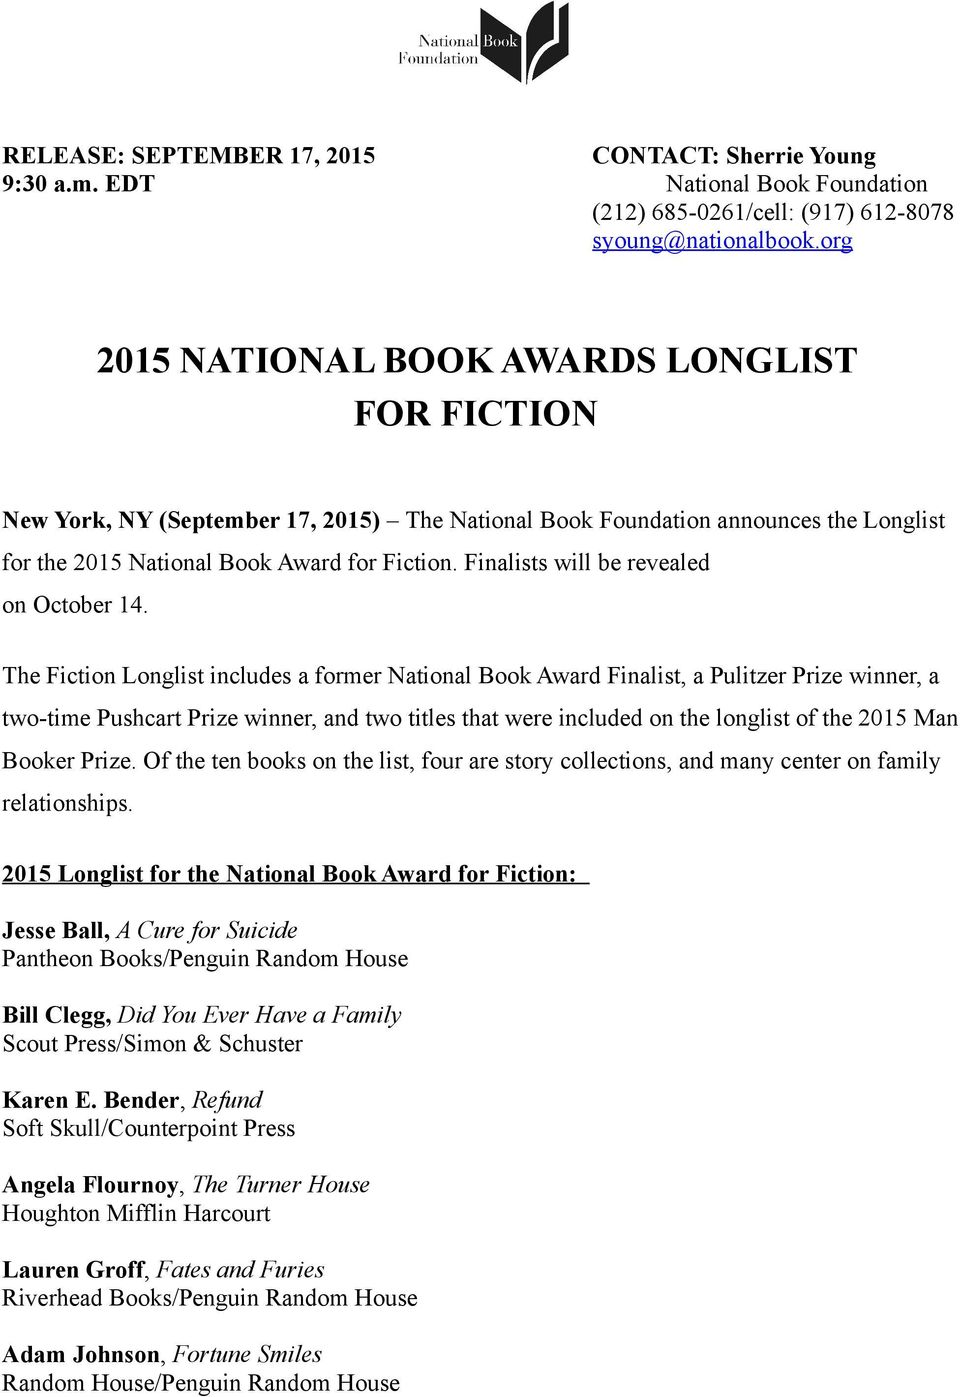 2015 National Book Awards Longlist For Fiction Pdf Free